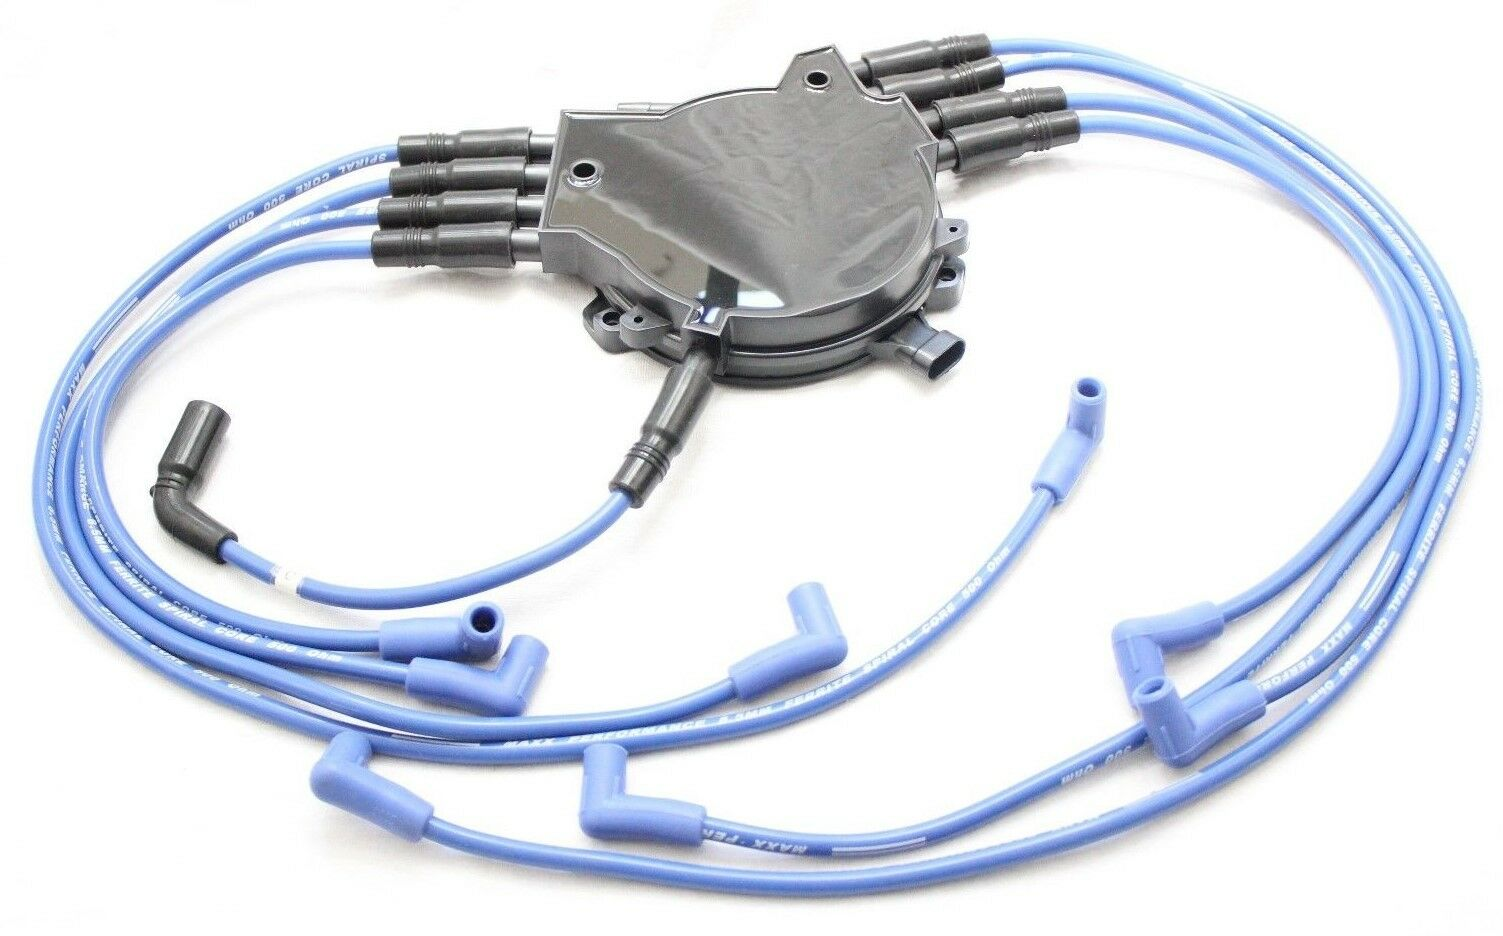 8.5mm Spark Plug Wires Optispark Distributor Cap 95-97 Camaro Firebird 5.7L  LT1 1 of 3Only 5 available See More